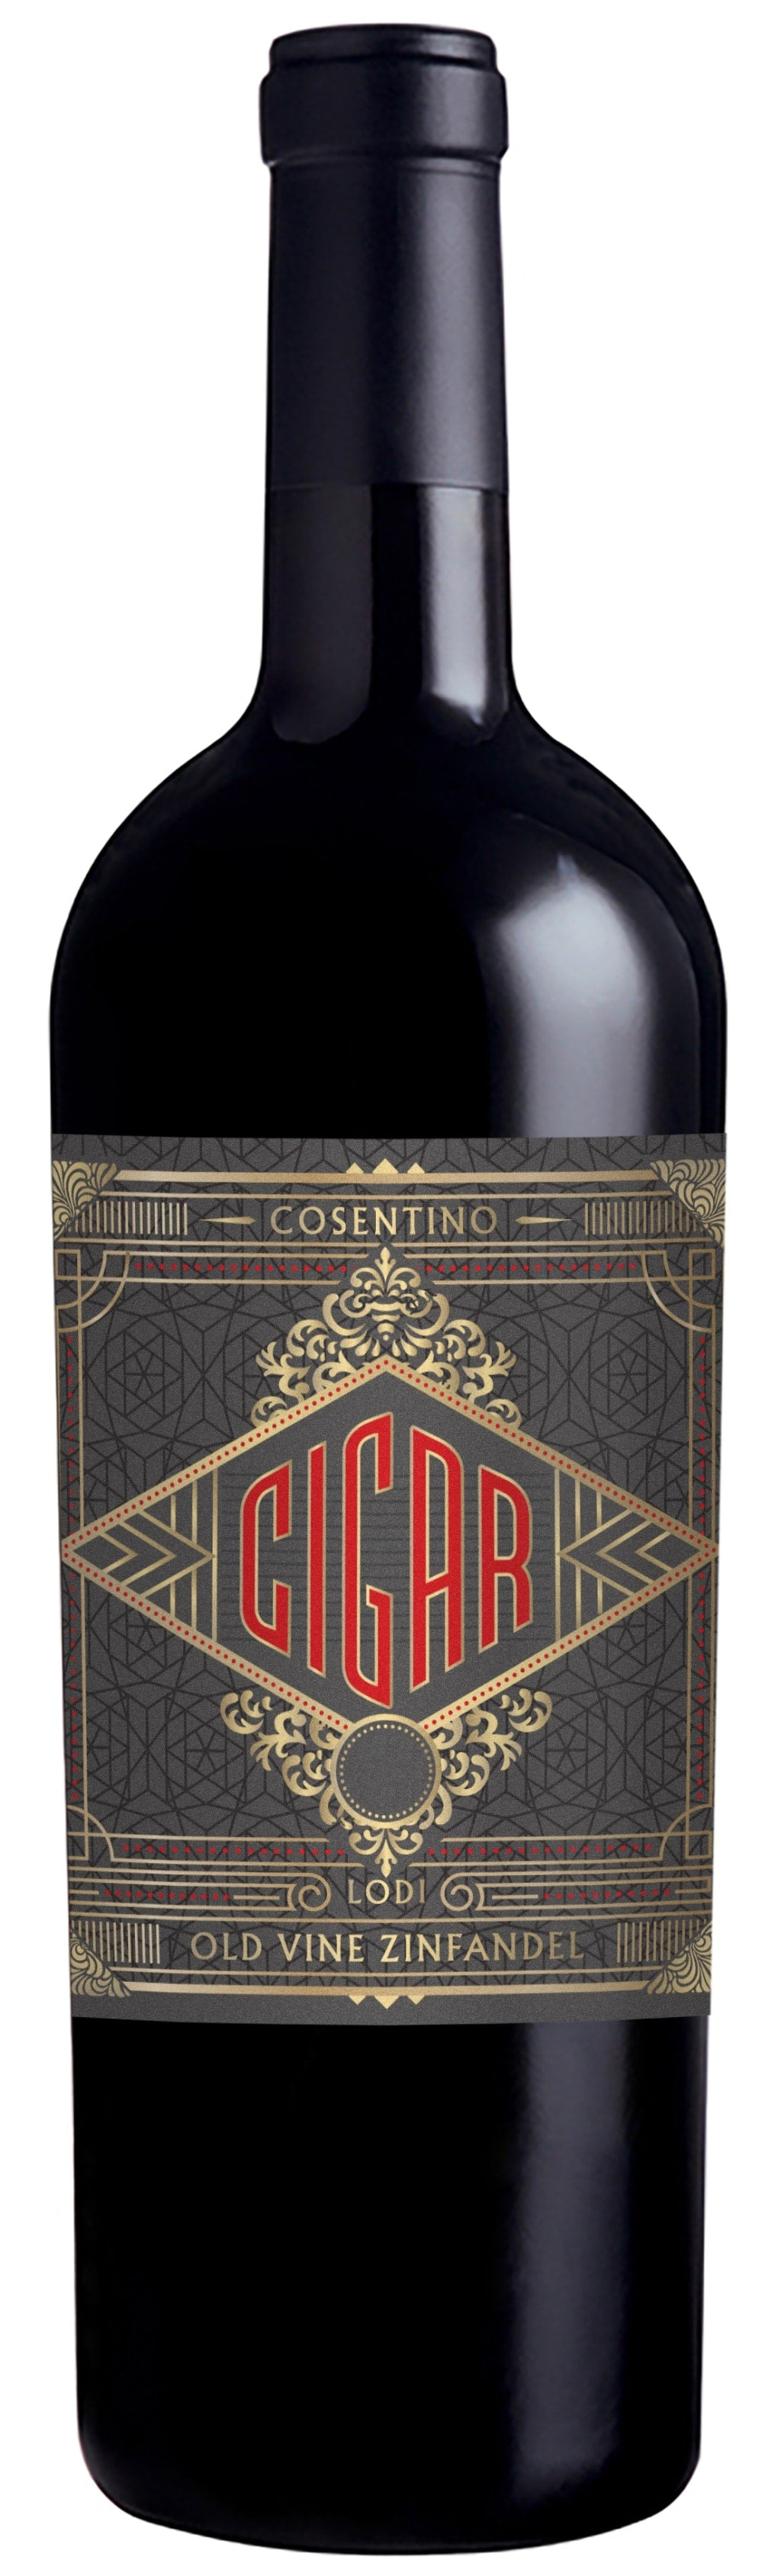 Cigar Zinfandel Old Vine 2018